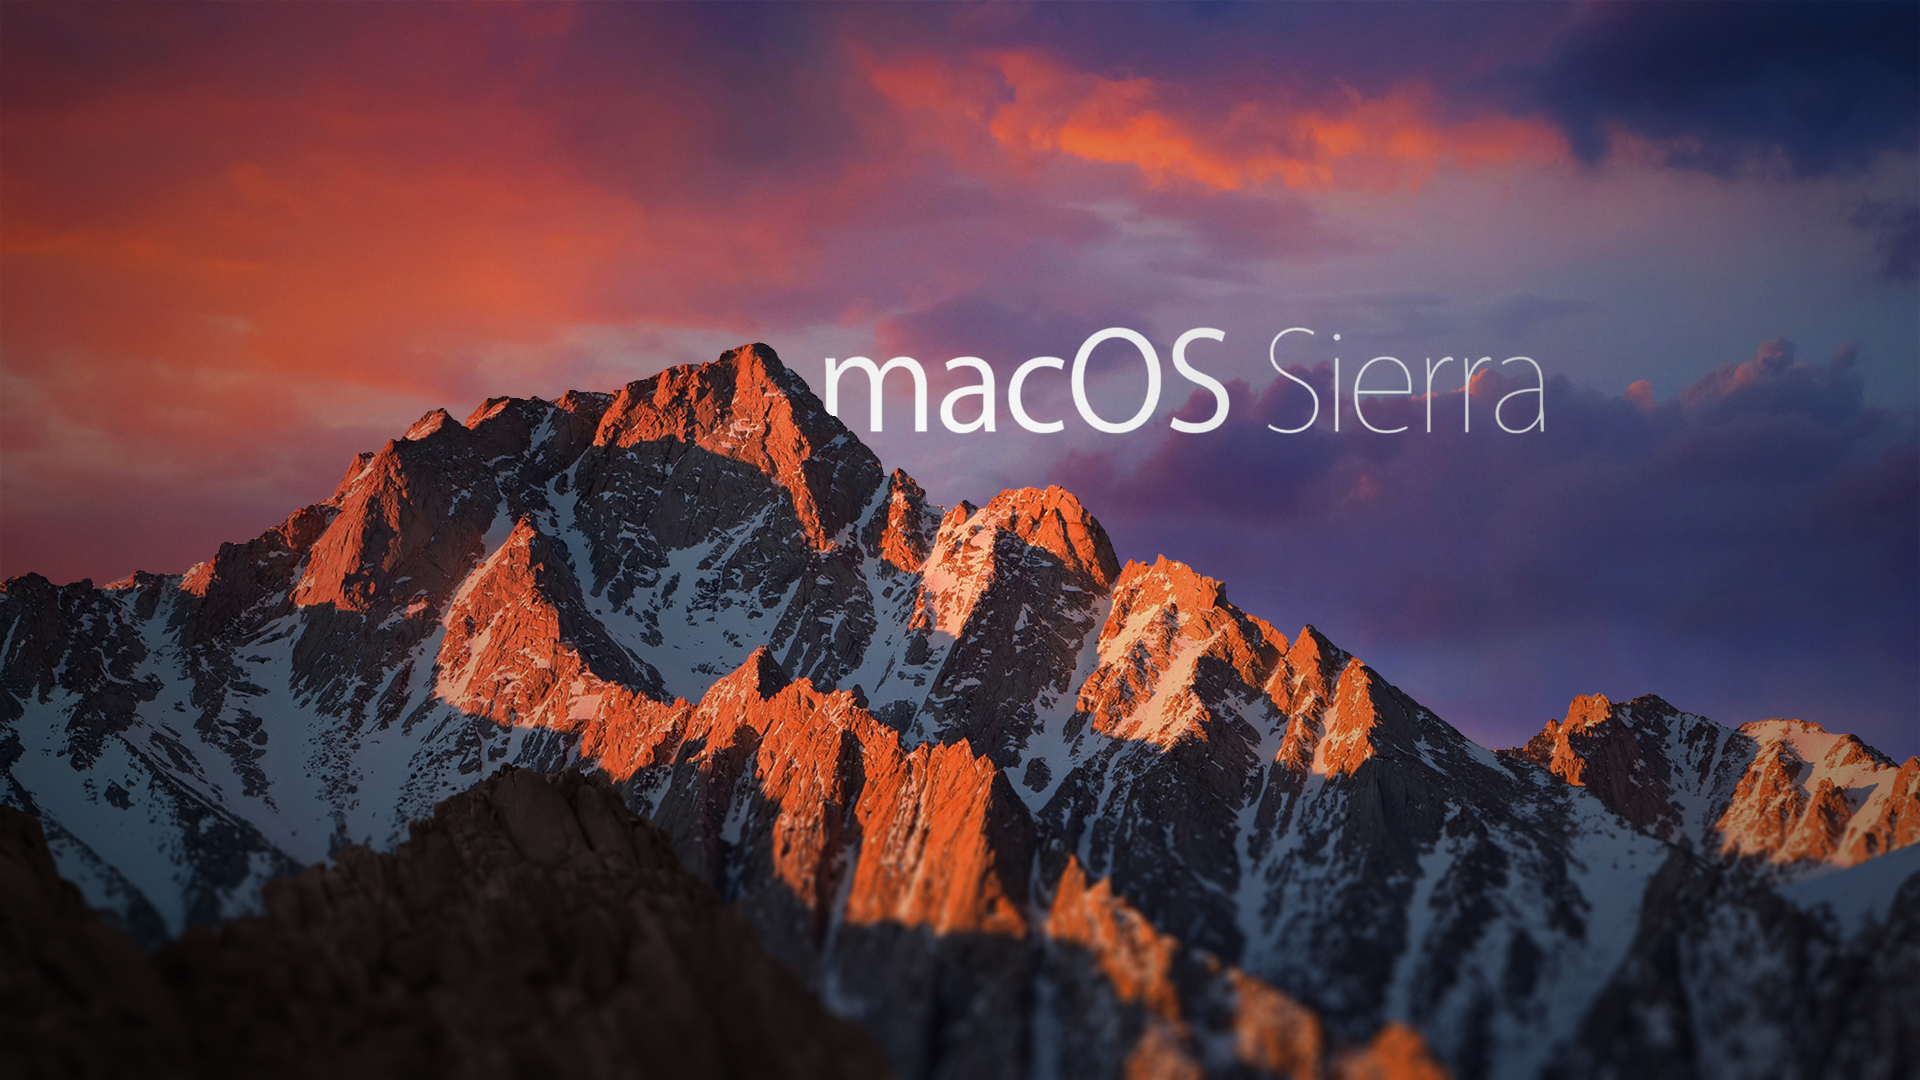 macos sierra alternative wallpaperkakoten on deviantart